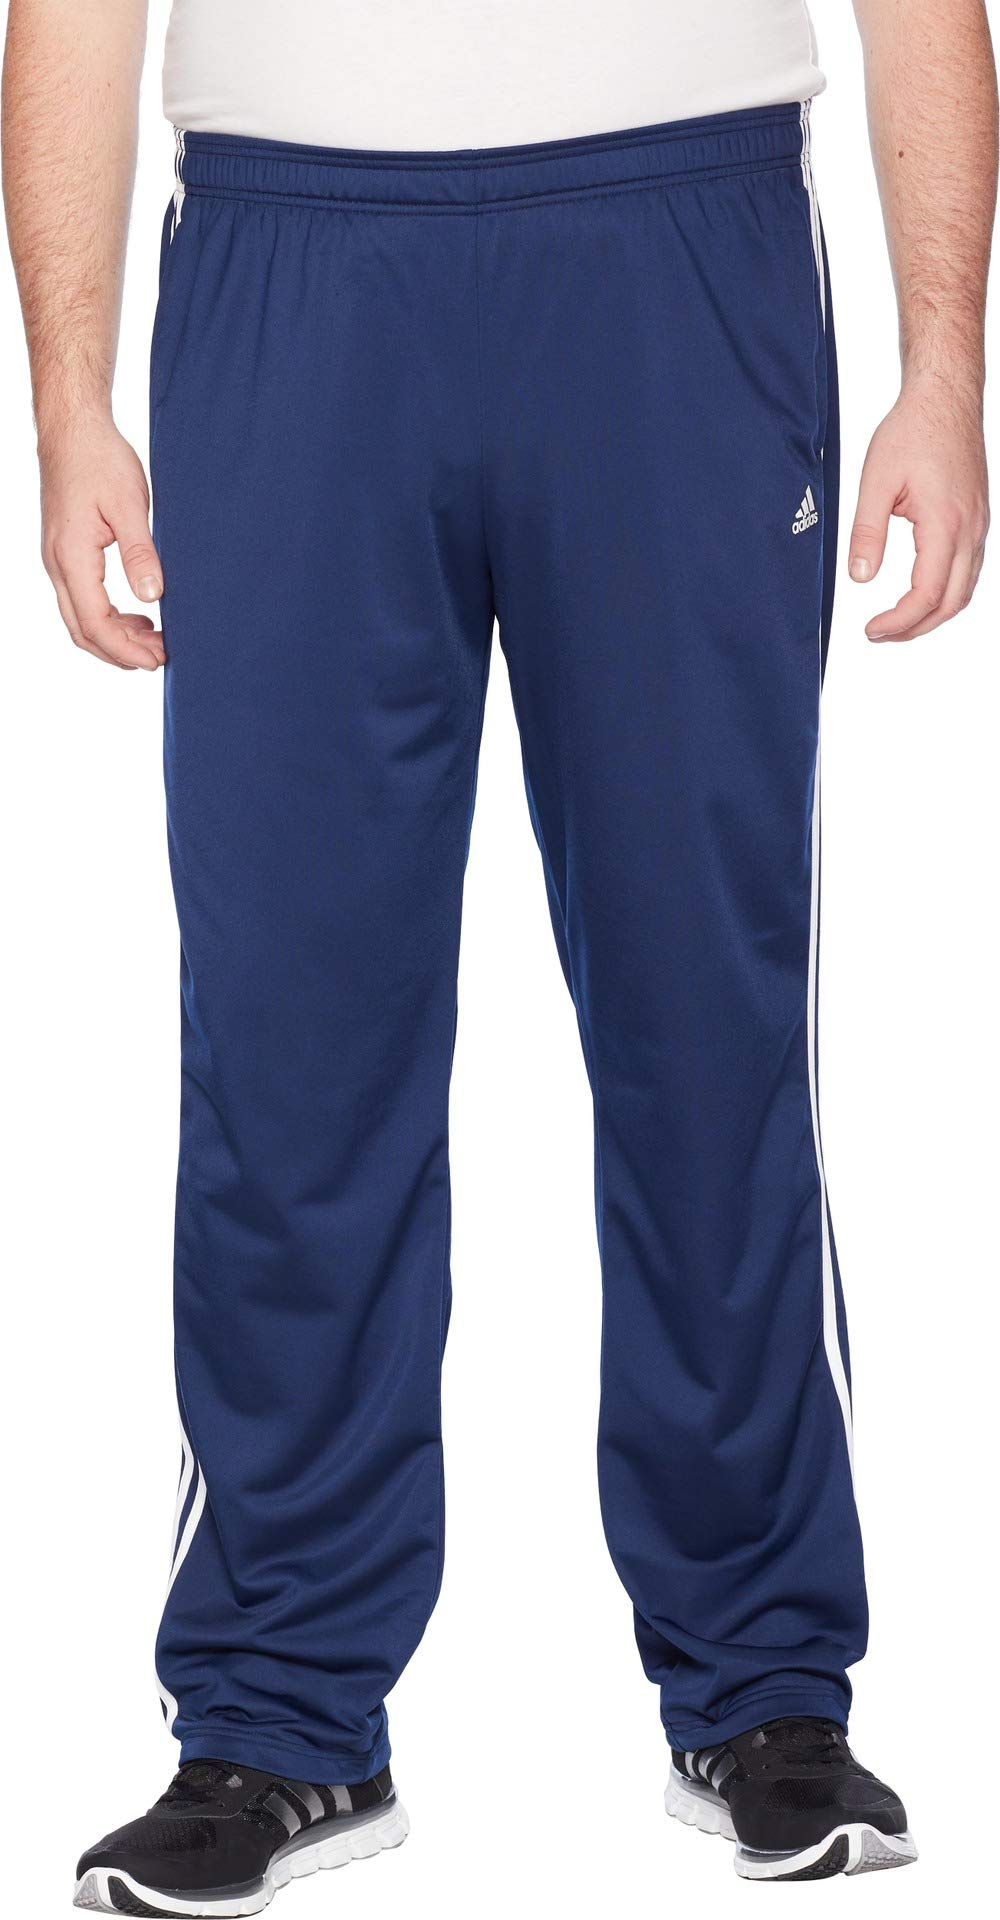 adidas Men's Big & Tall Essentials 3-Stripes Regular Fit Tricot Pants Collegiate Navy/White 1 Large 34 Tall 34